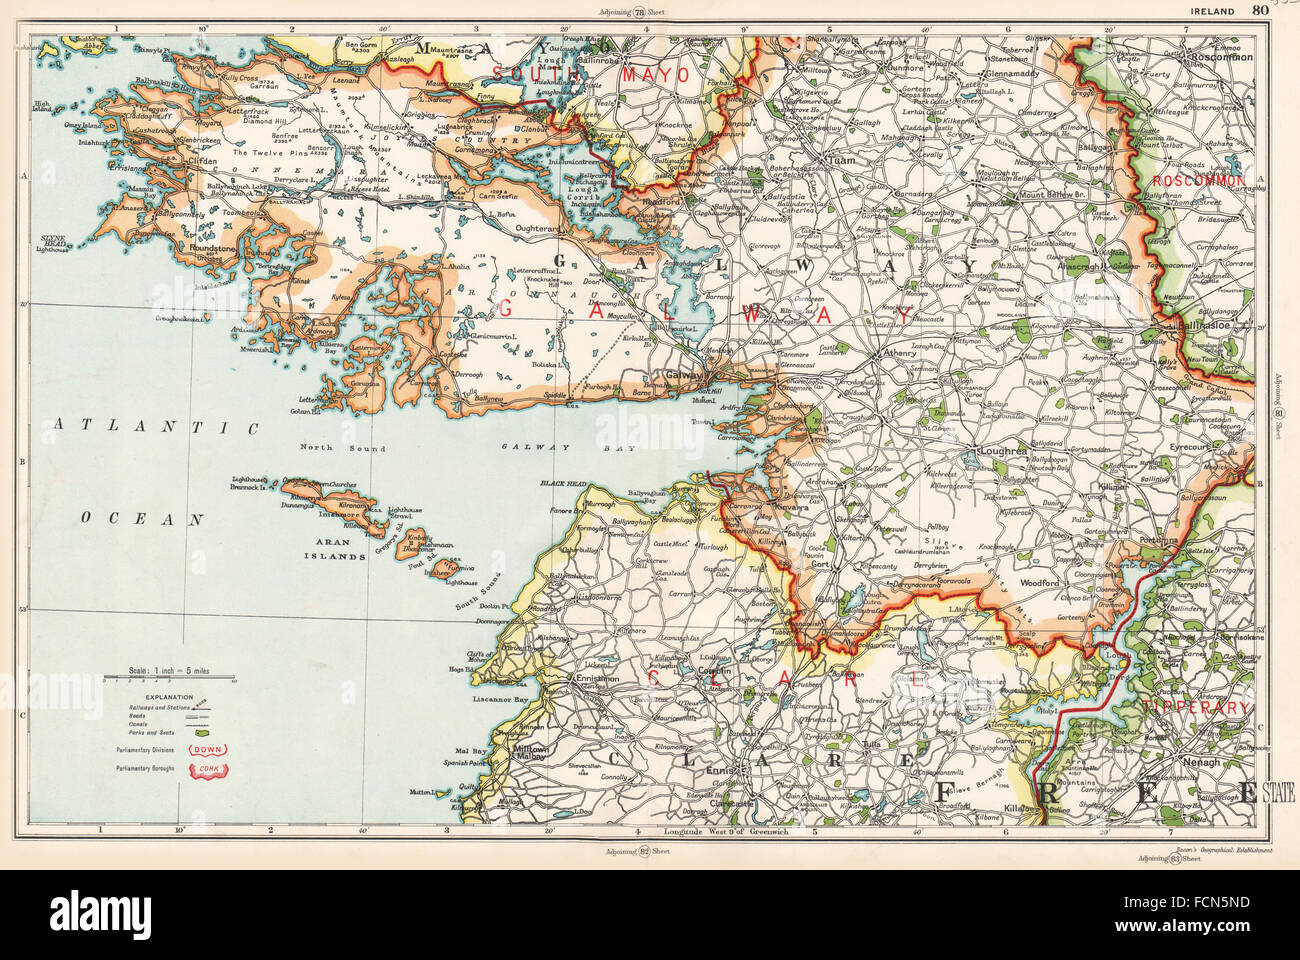 Galway Bay Ireland Map.Ireland West Galway Bay Clare Parliamentary Divisions Boroughs Bacon